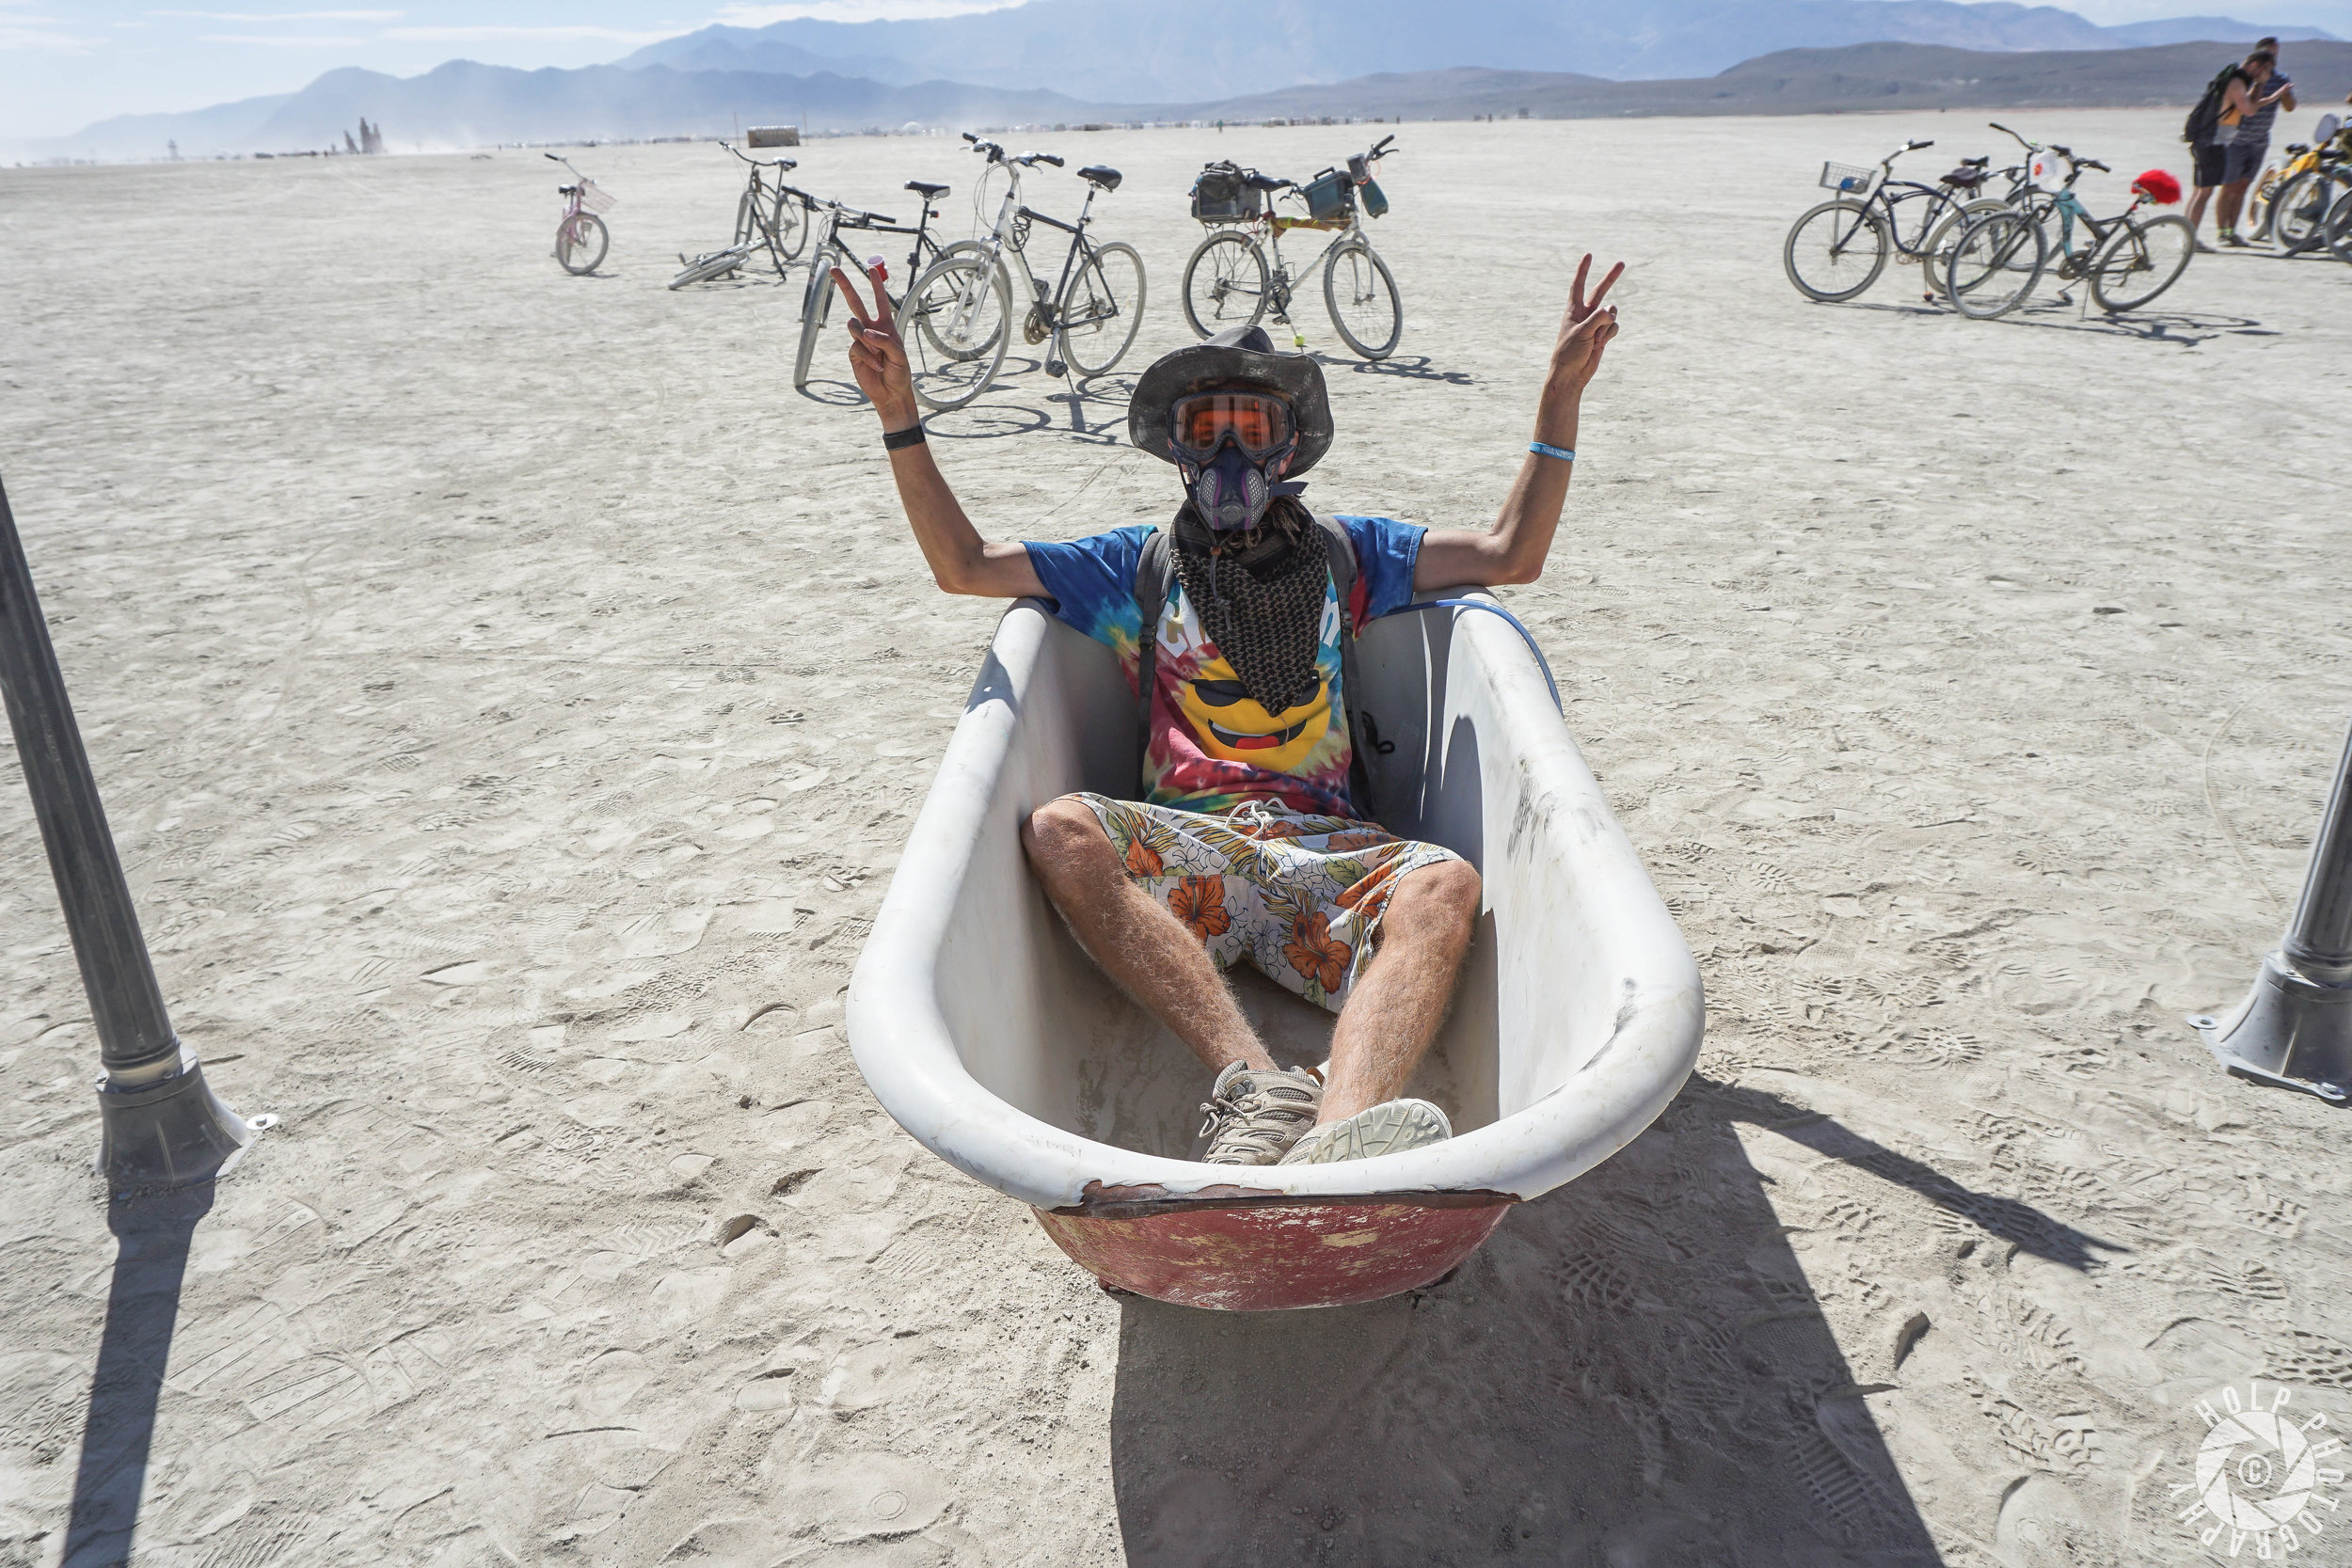 Chilling in a bathtub on the playa. Wearing my mask and goggles when it's not necessary.